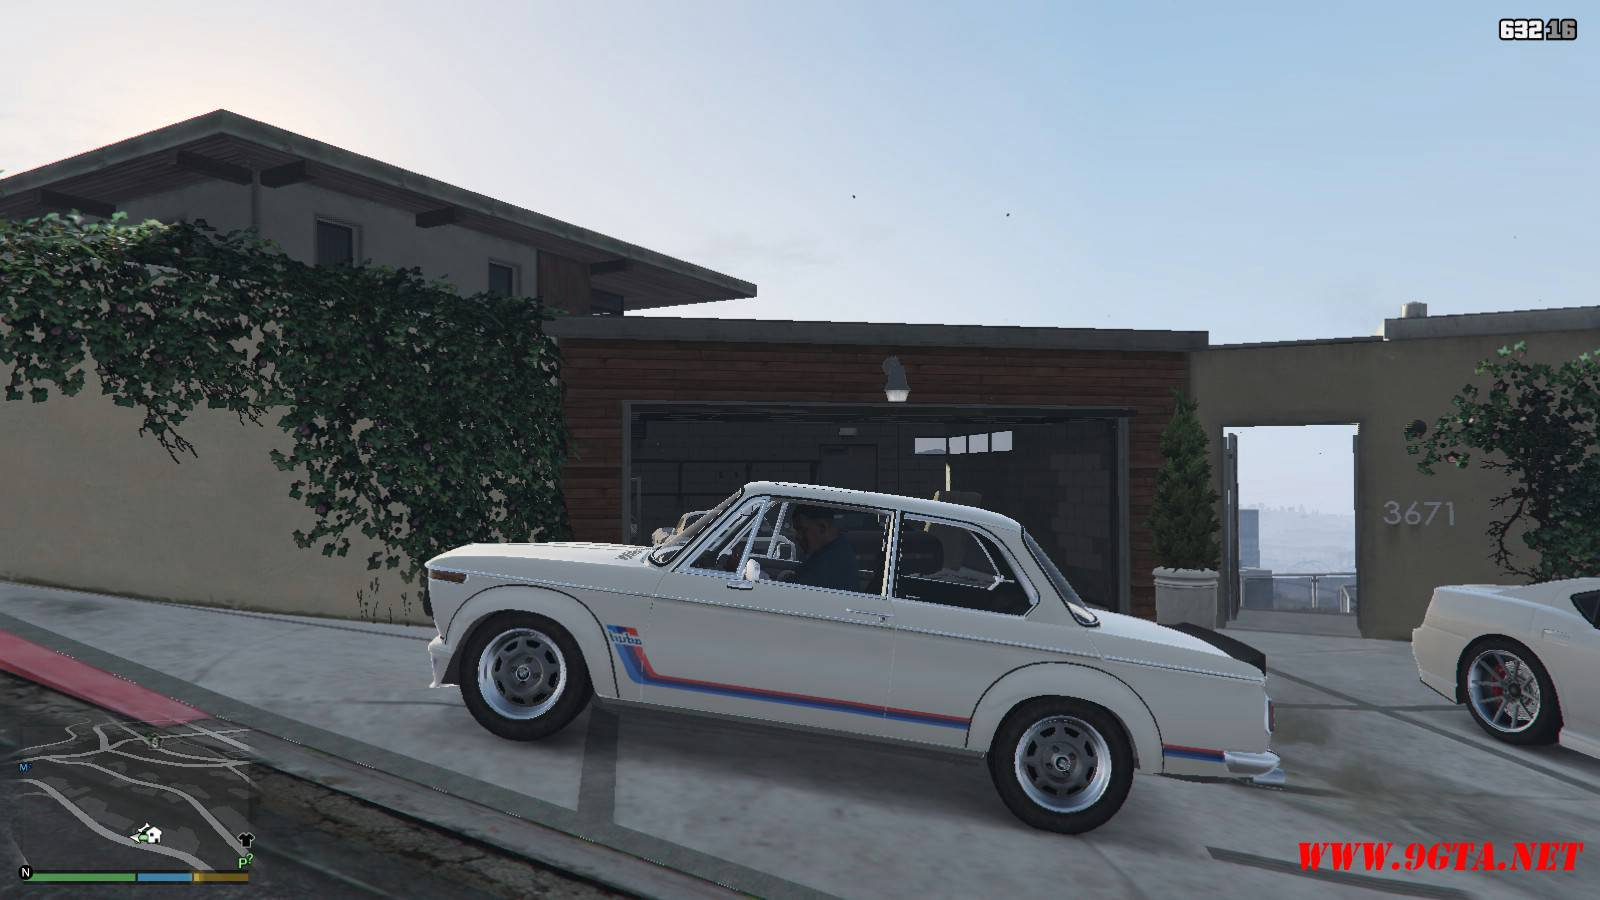 2002 BMW Turbo Mod For GTA5 (2)